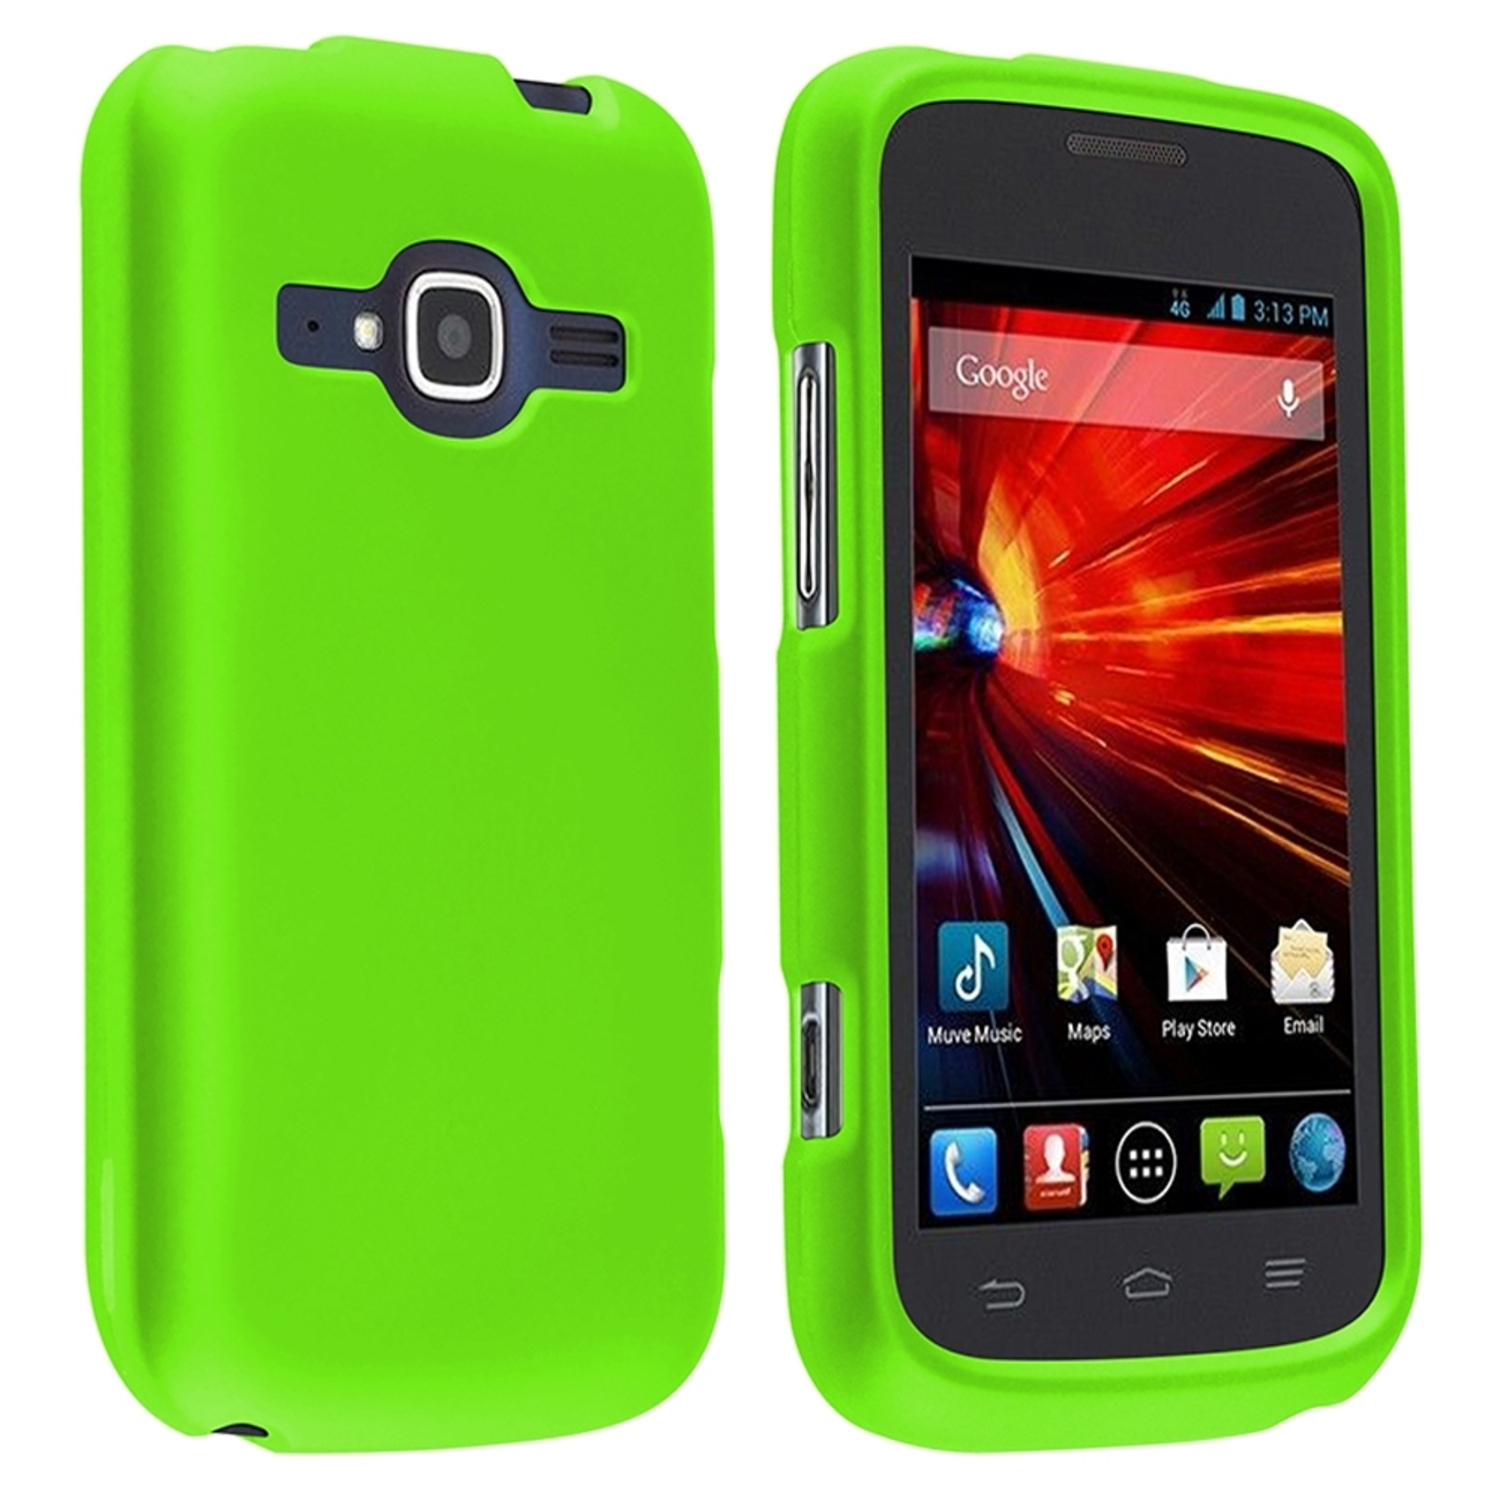 Insten Neon Green Ultra Thin Clip On Hard Shell Phone Case Cover For ZTE Concord II Z730